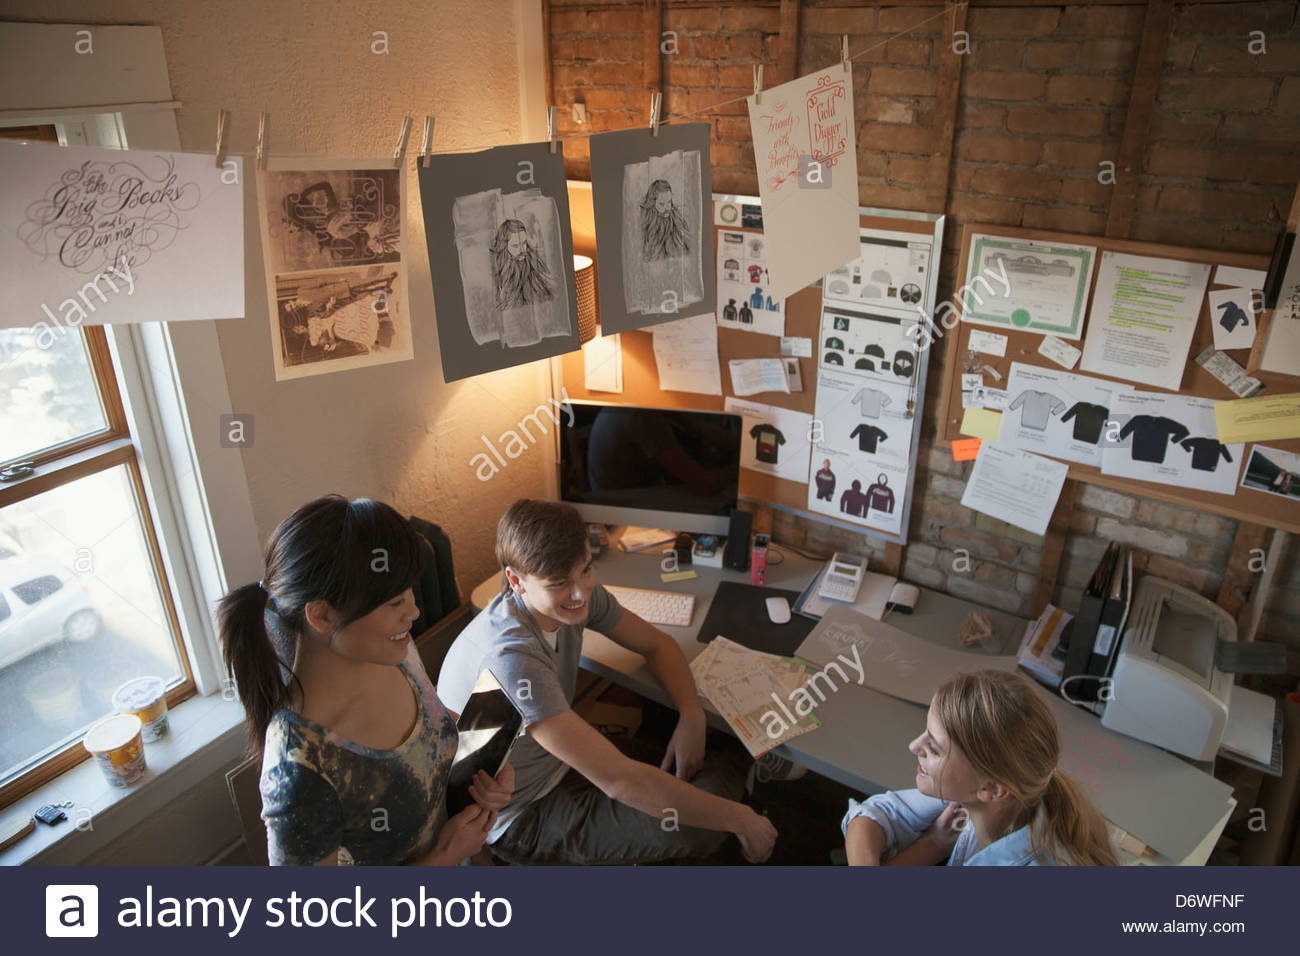 High angle view of design professionals in discussion at workshop - Stock Image